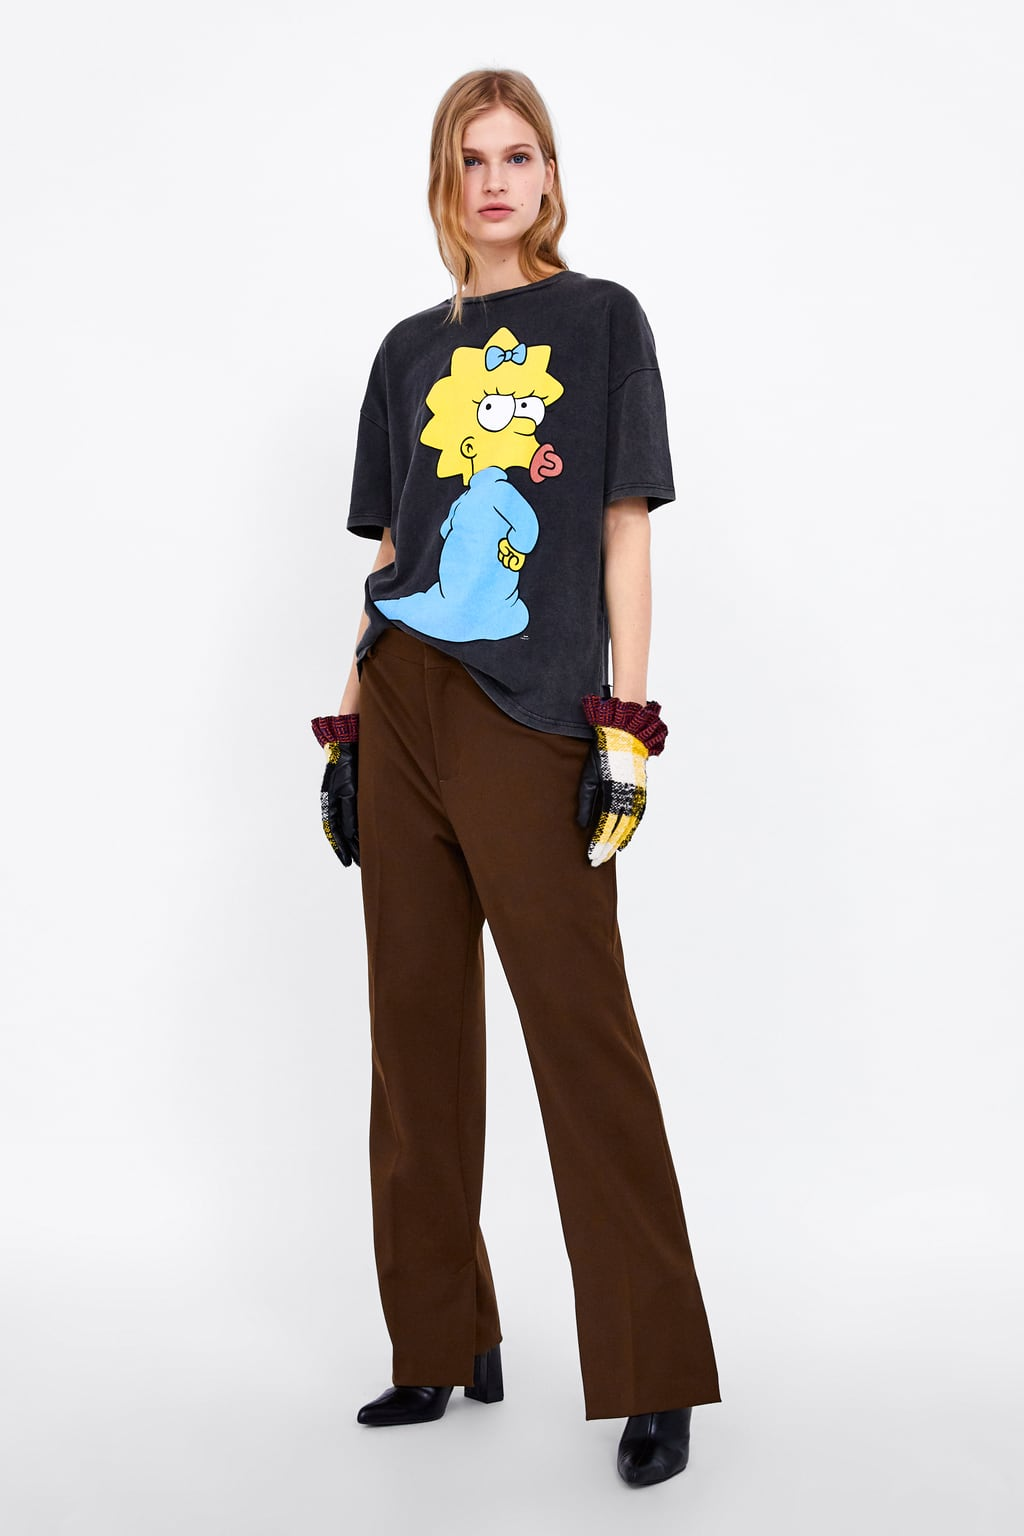 ©THE SIMPSONS' MAGGIE T-SHIRT